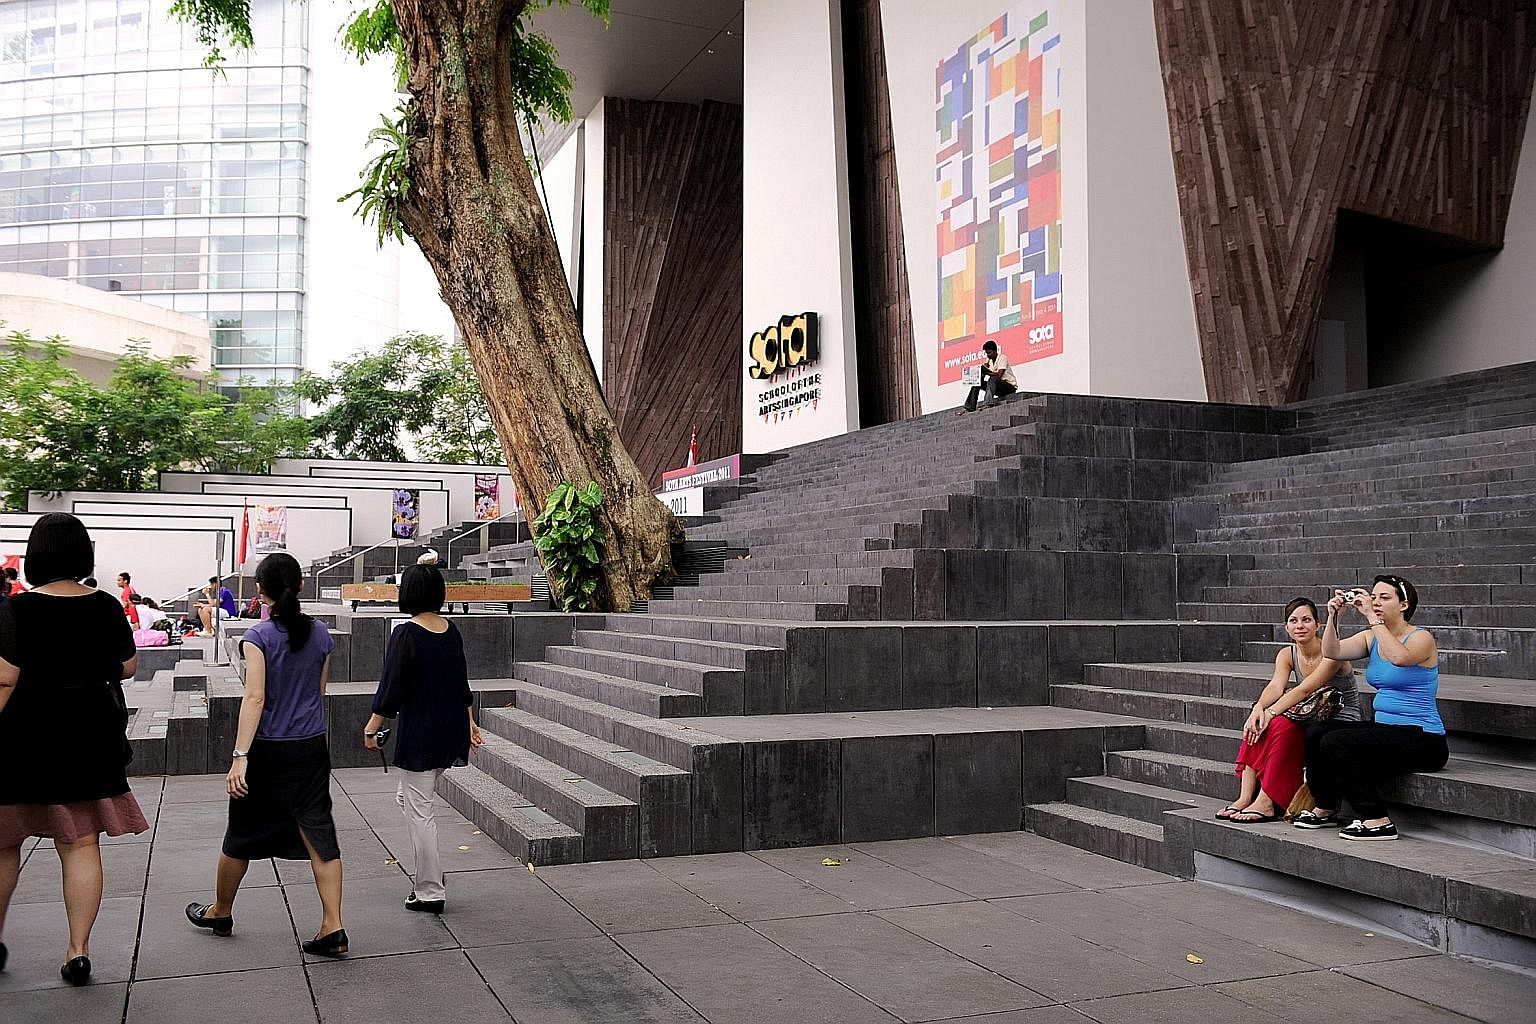 The School of the Arts campus in Orchard Road. With the centrepiece of Singapore's future economic strategy being creativity and innovation, the question is whether we should have a mini Sota in every school, says the writer.